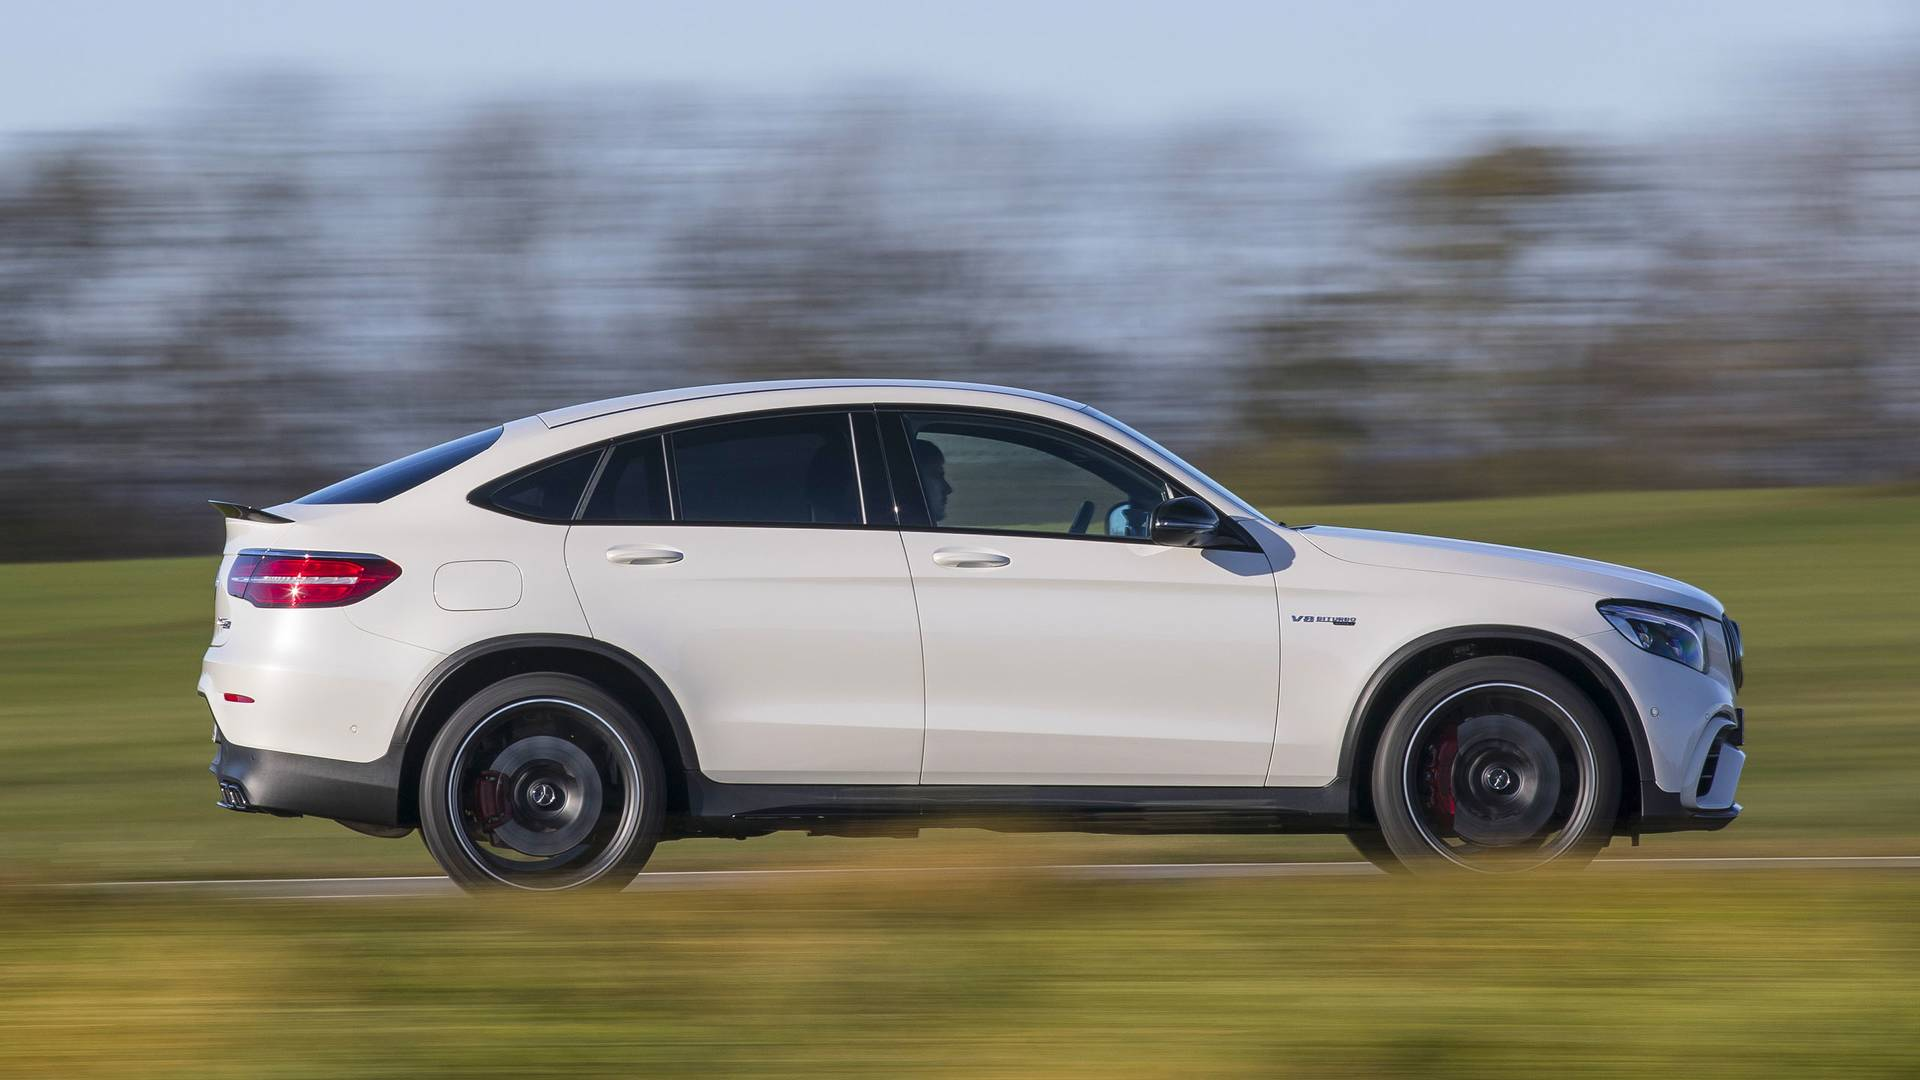 https://icdn-0.motor1.com/images/mgl/EobkR/s1/2018-mercedes-amg-glc63-coupe-first-drive.jpg